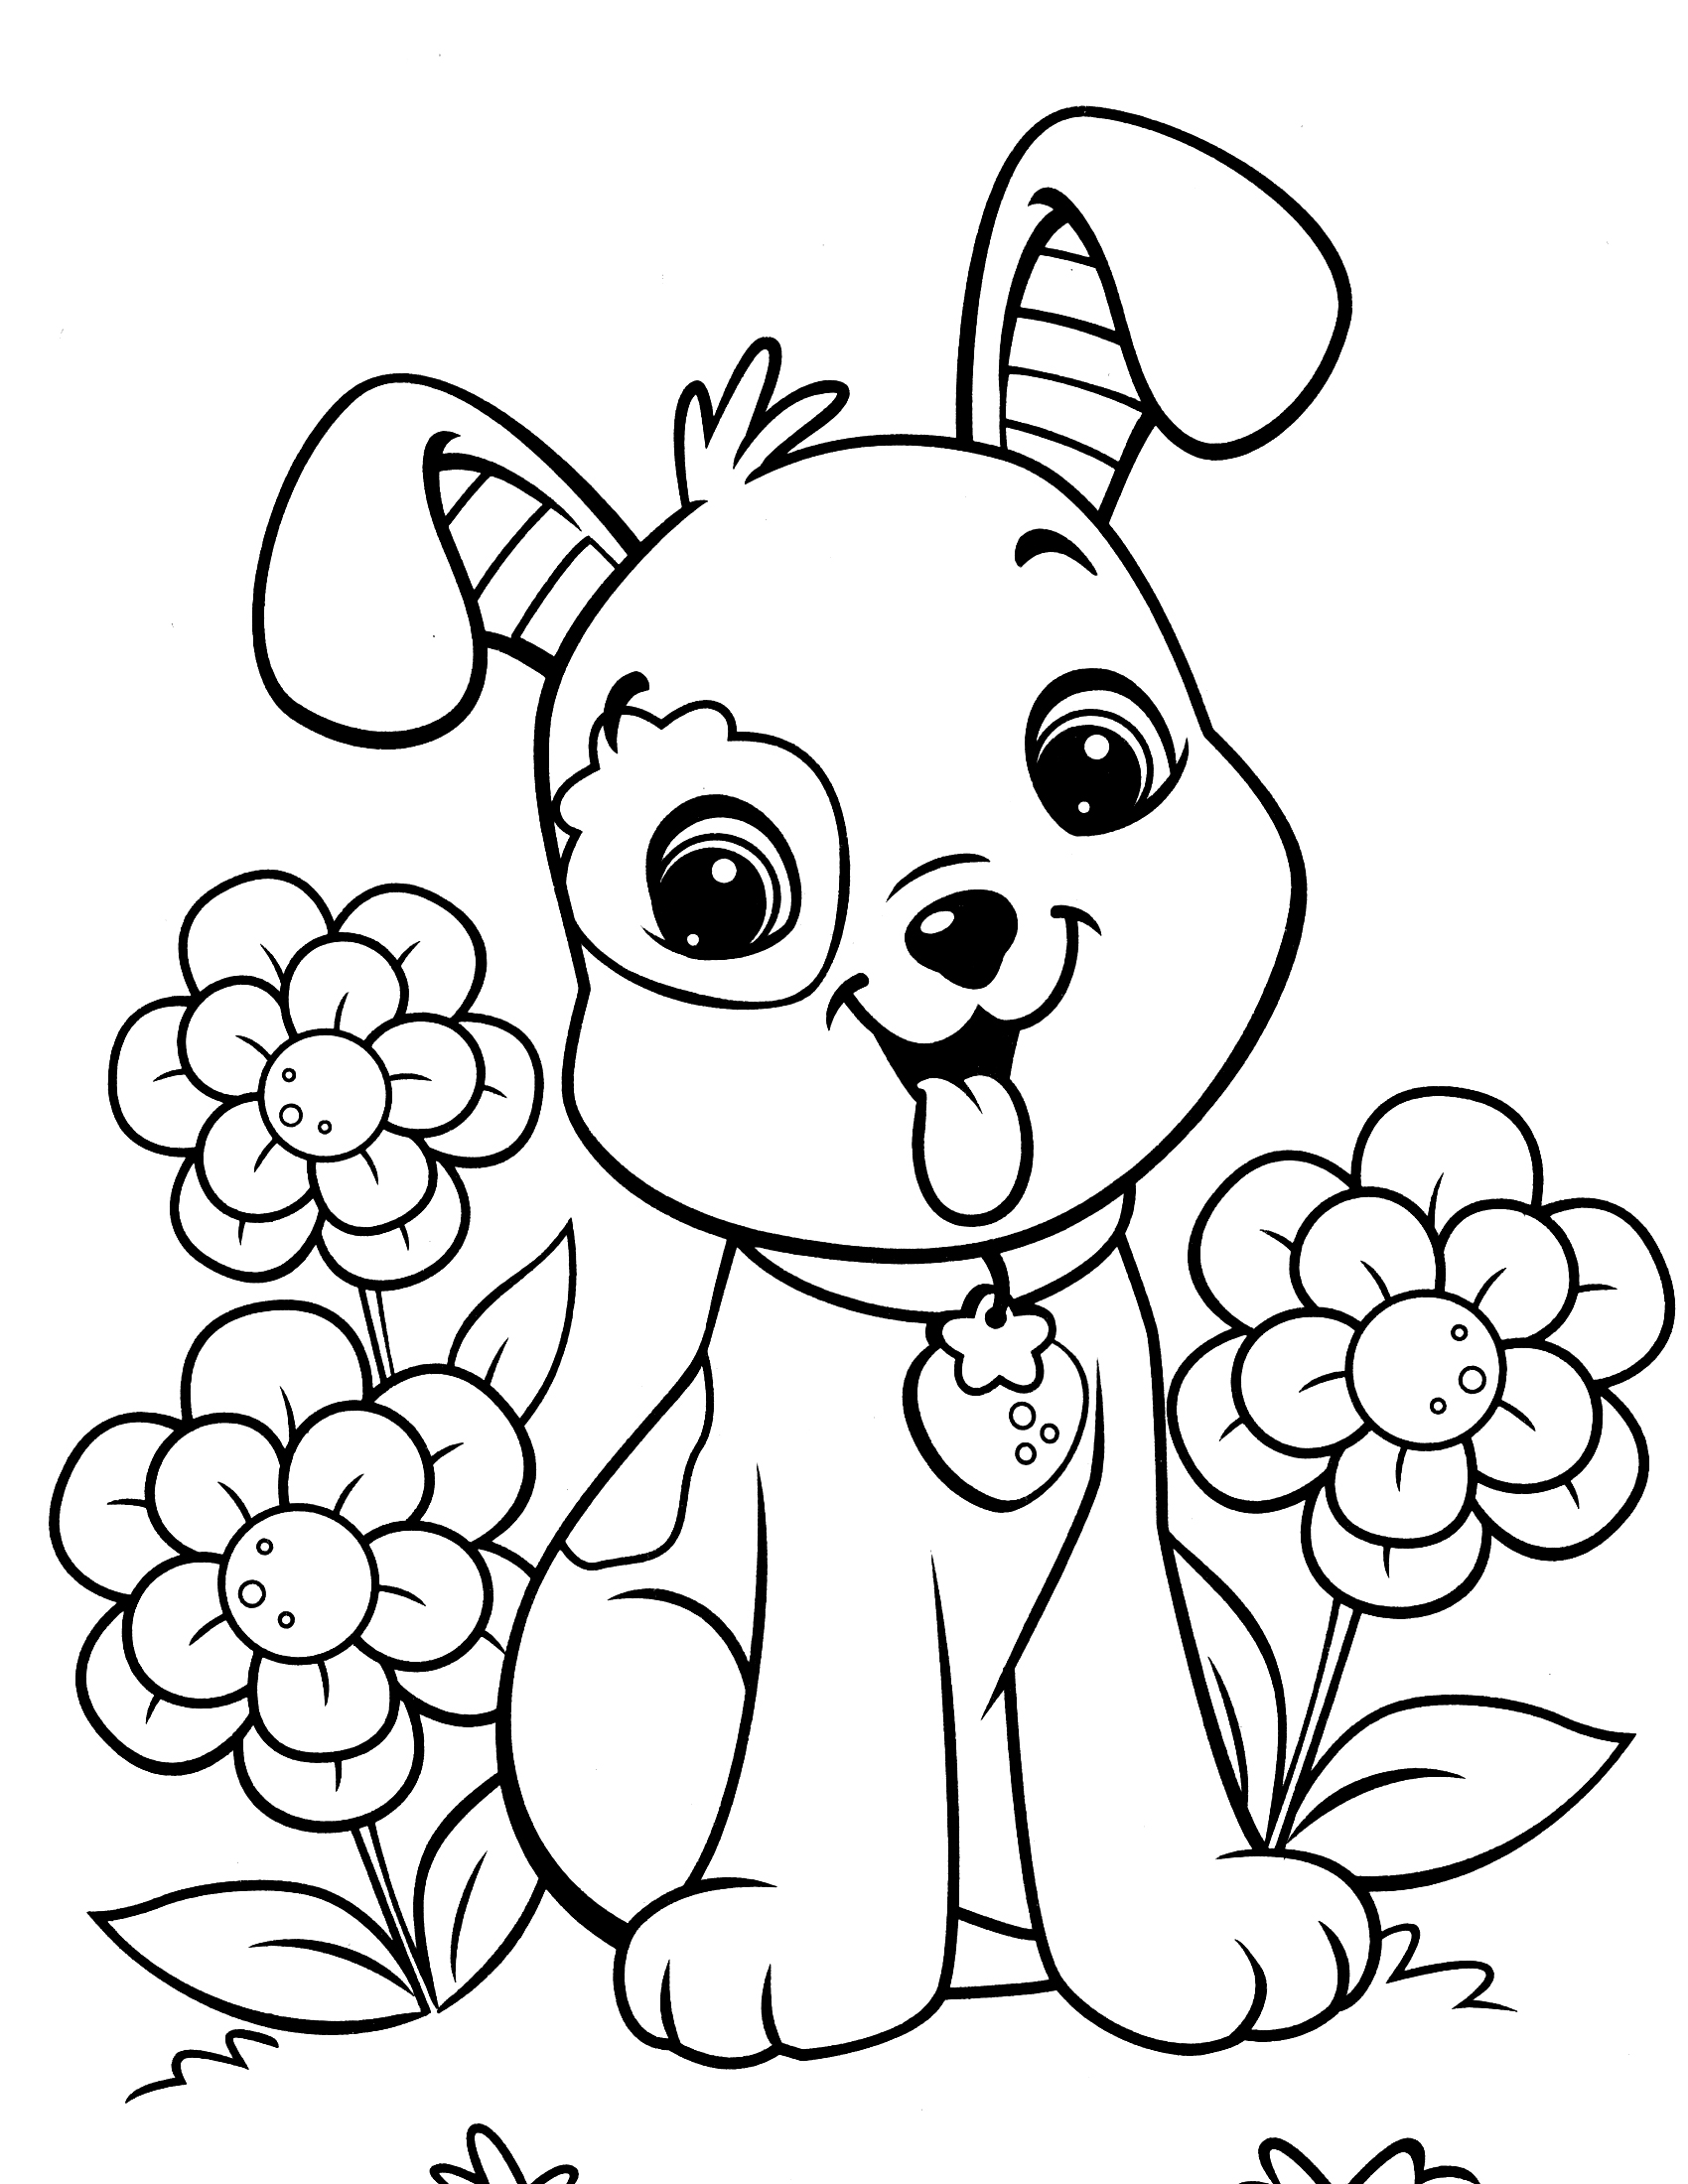 dog coloring top 10 dog names coloring pages fast free and printable coloring dog